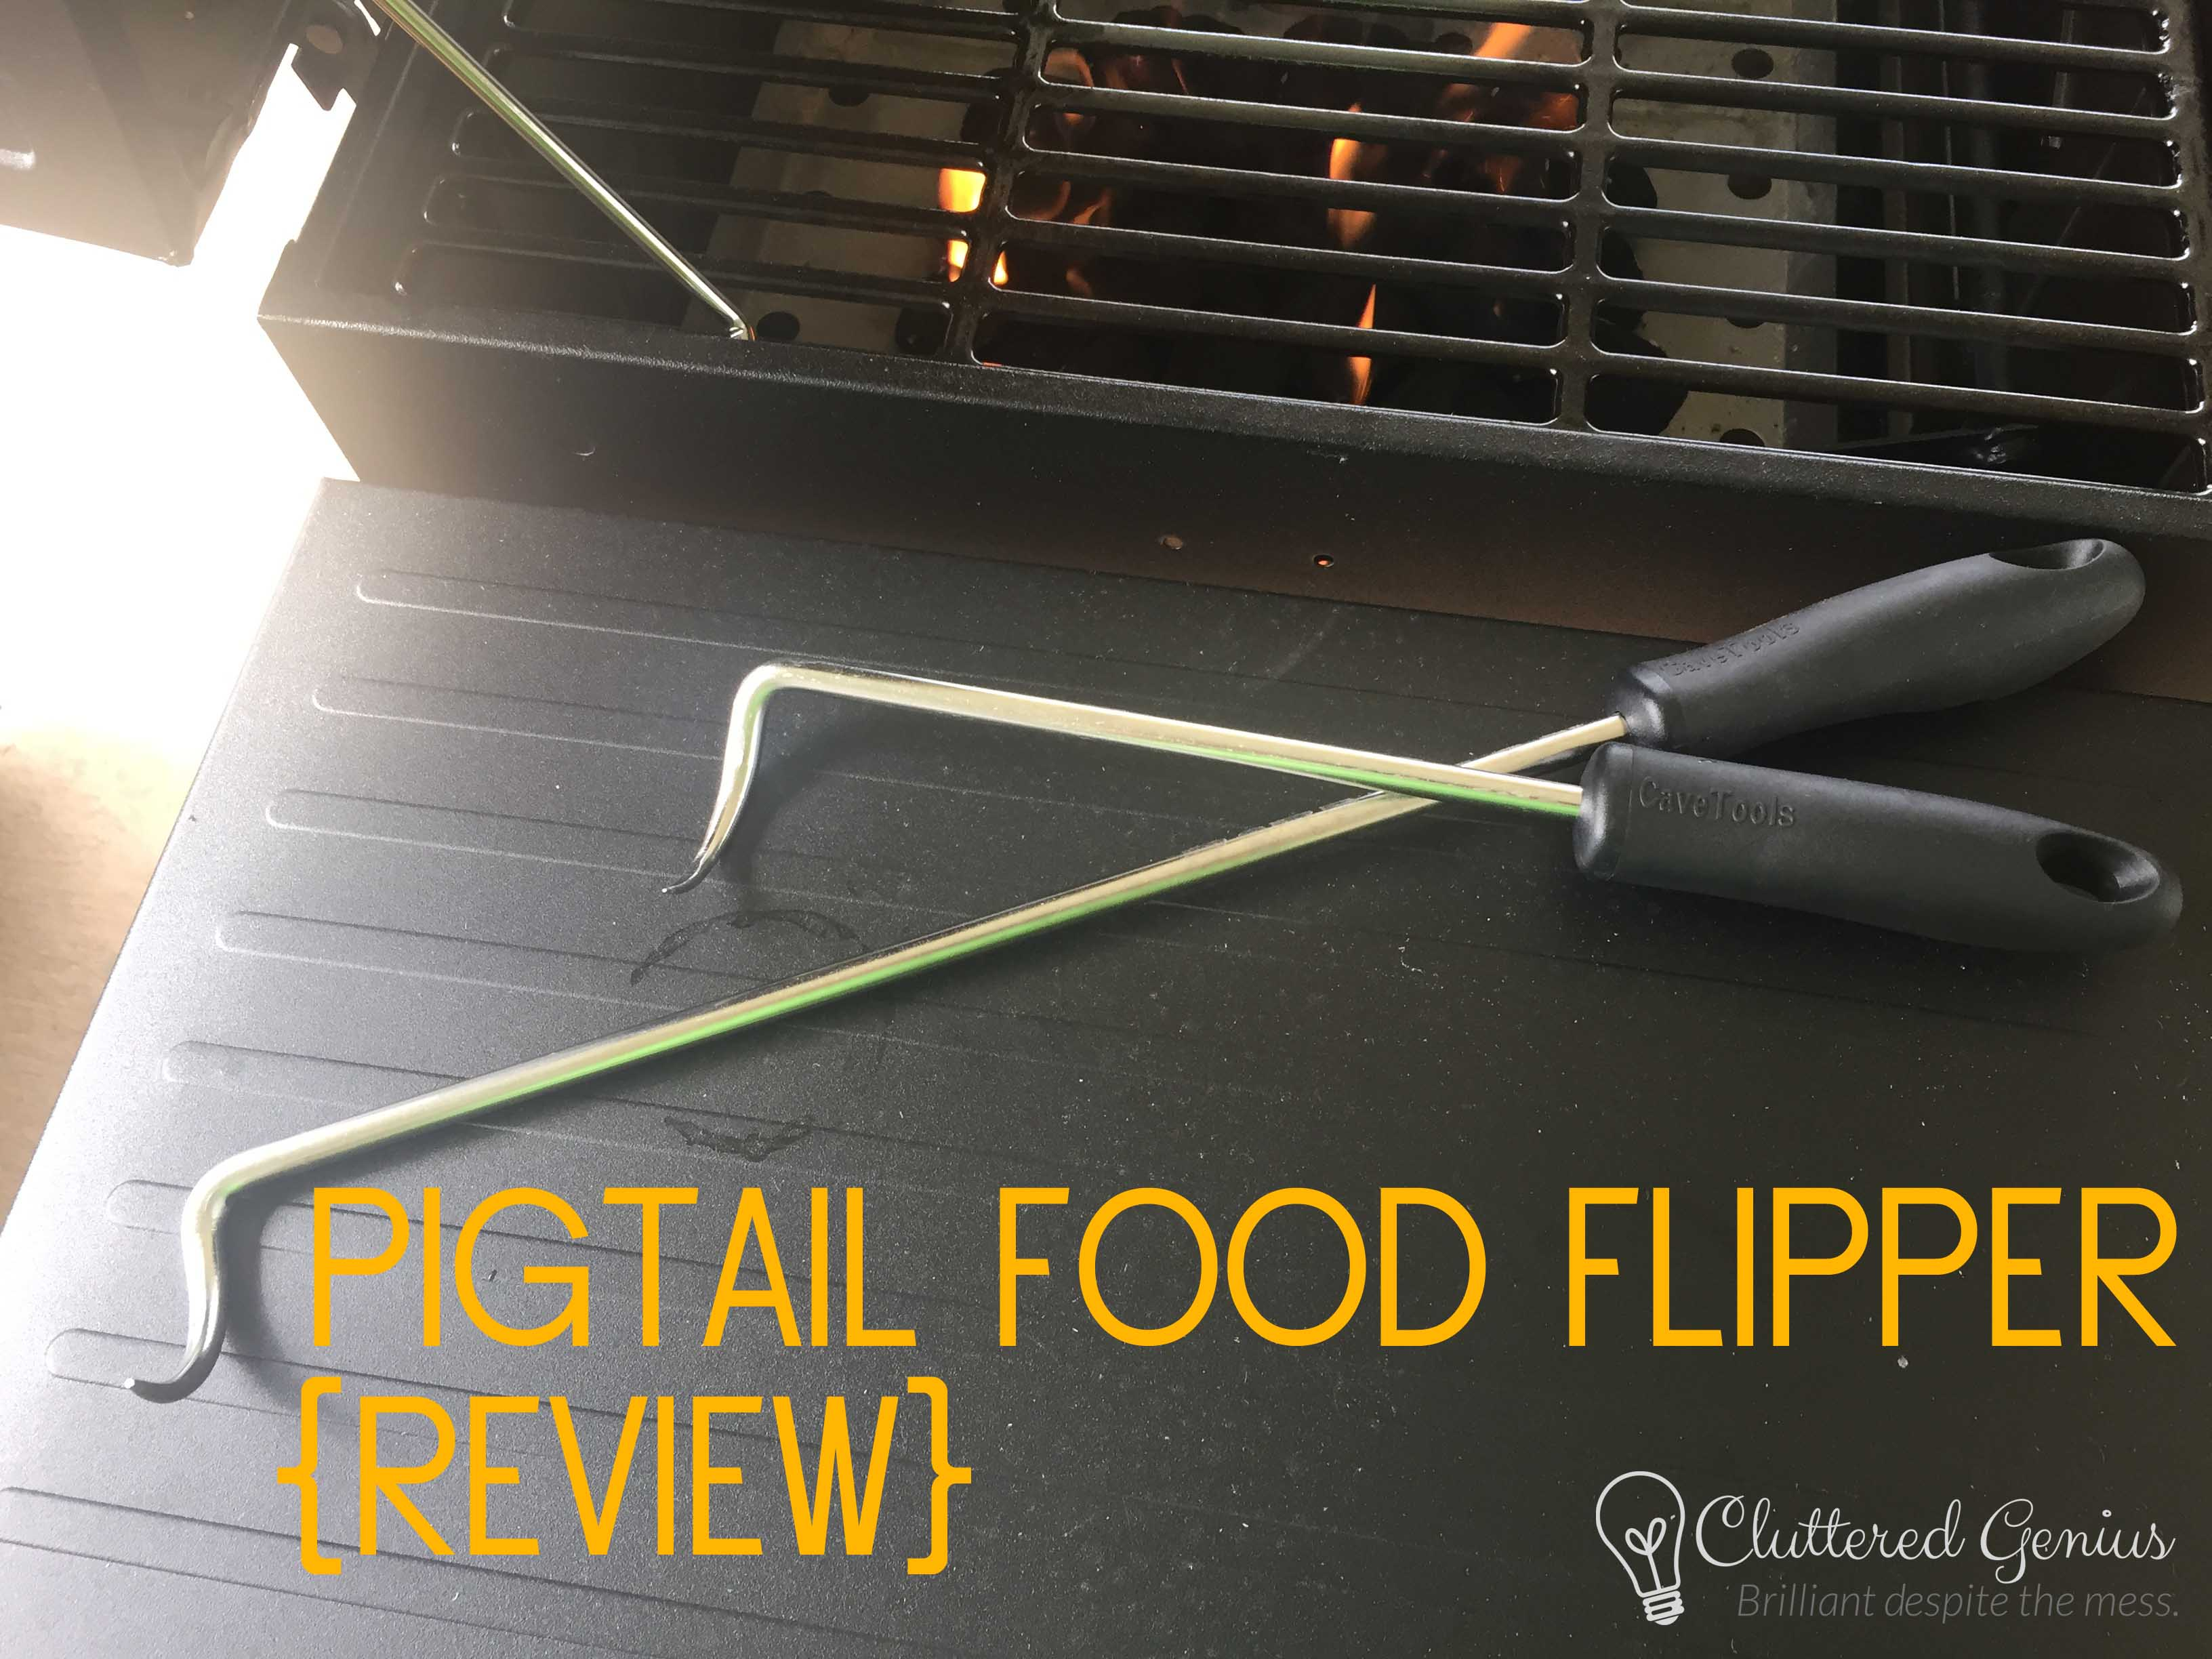 Pigtail Food Flipper from CaveTools (Review)